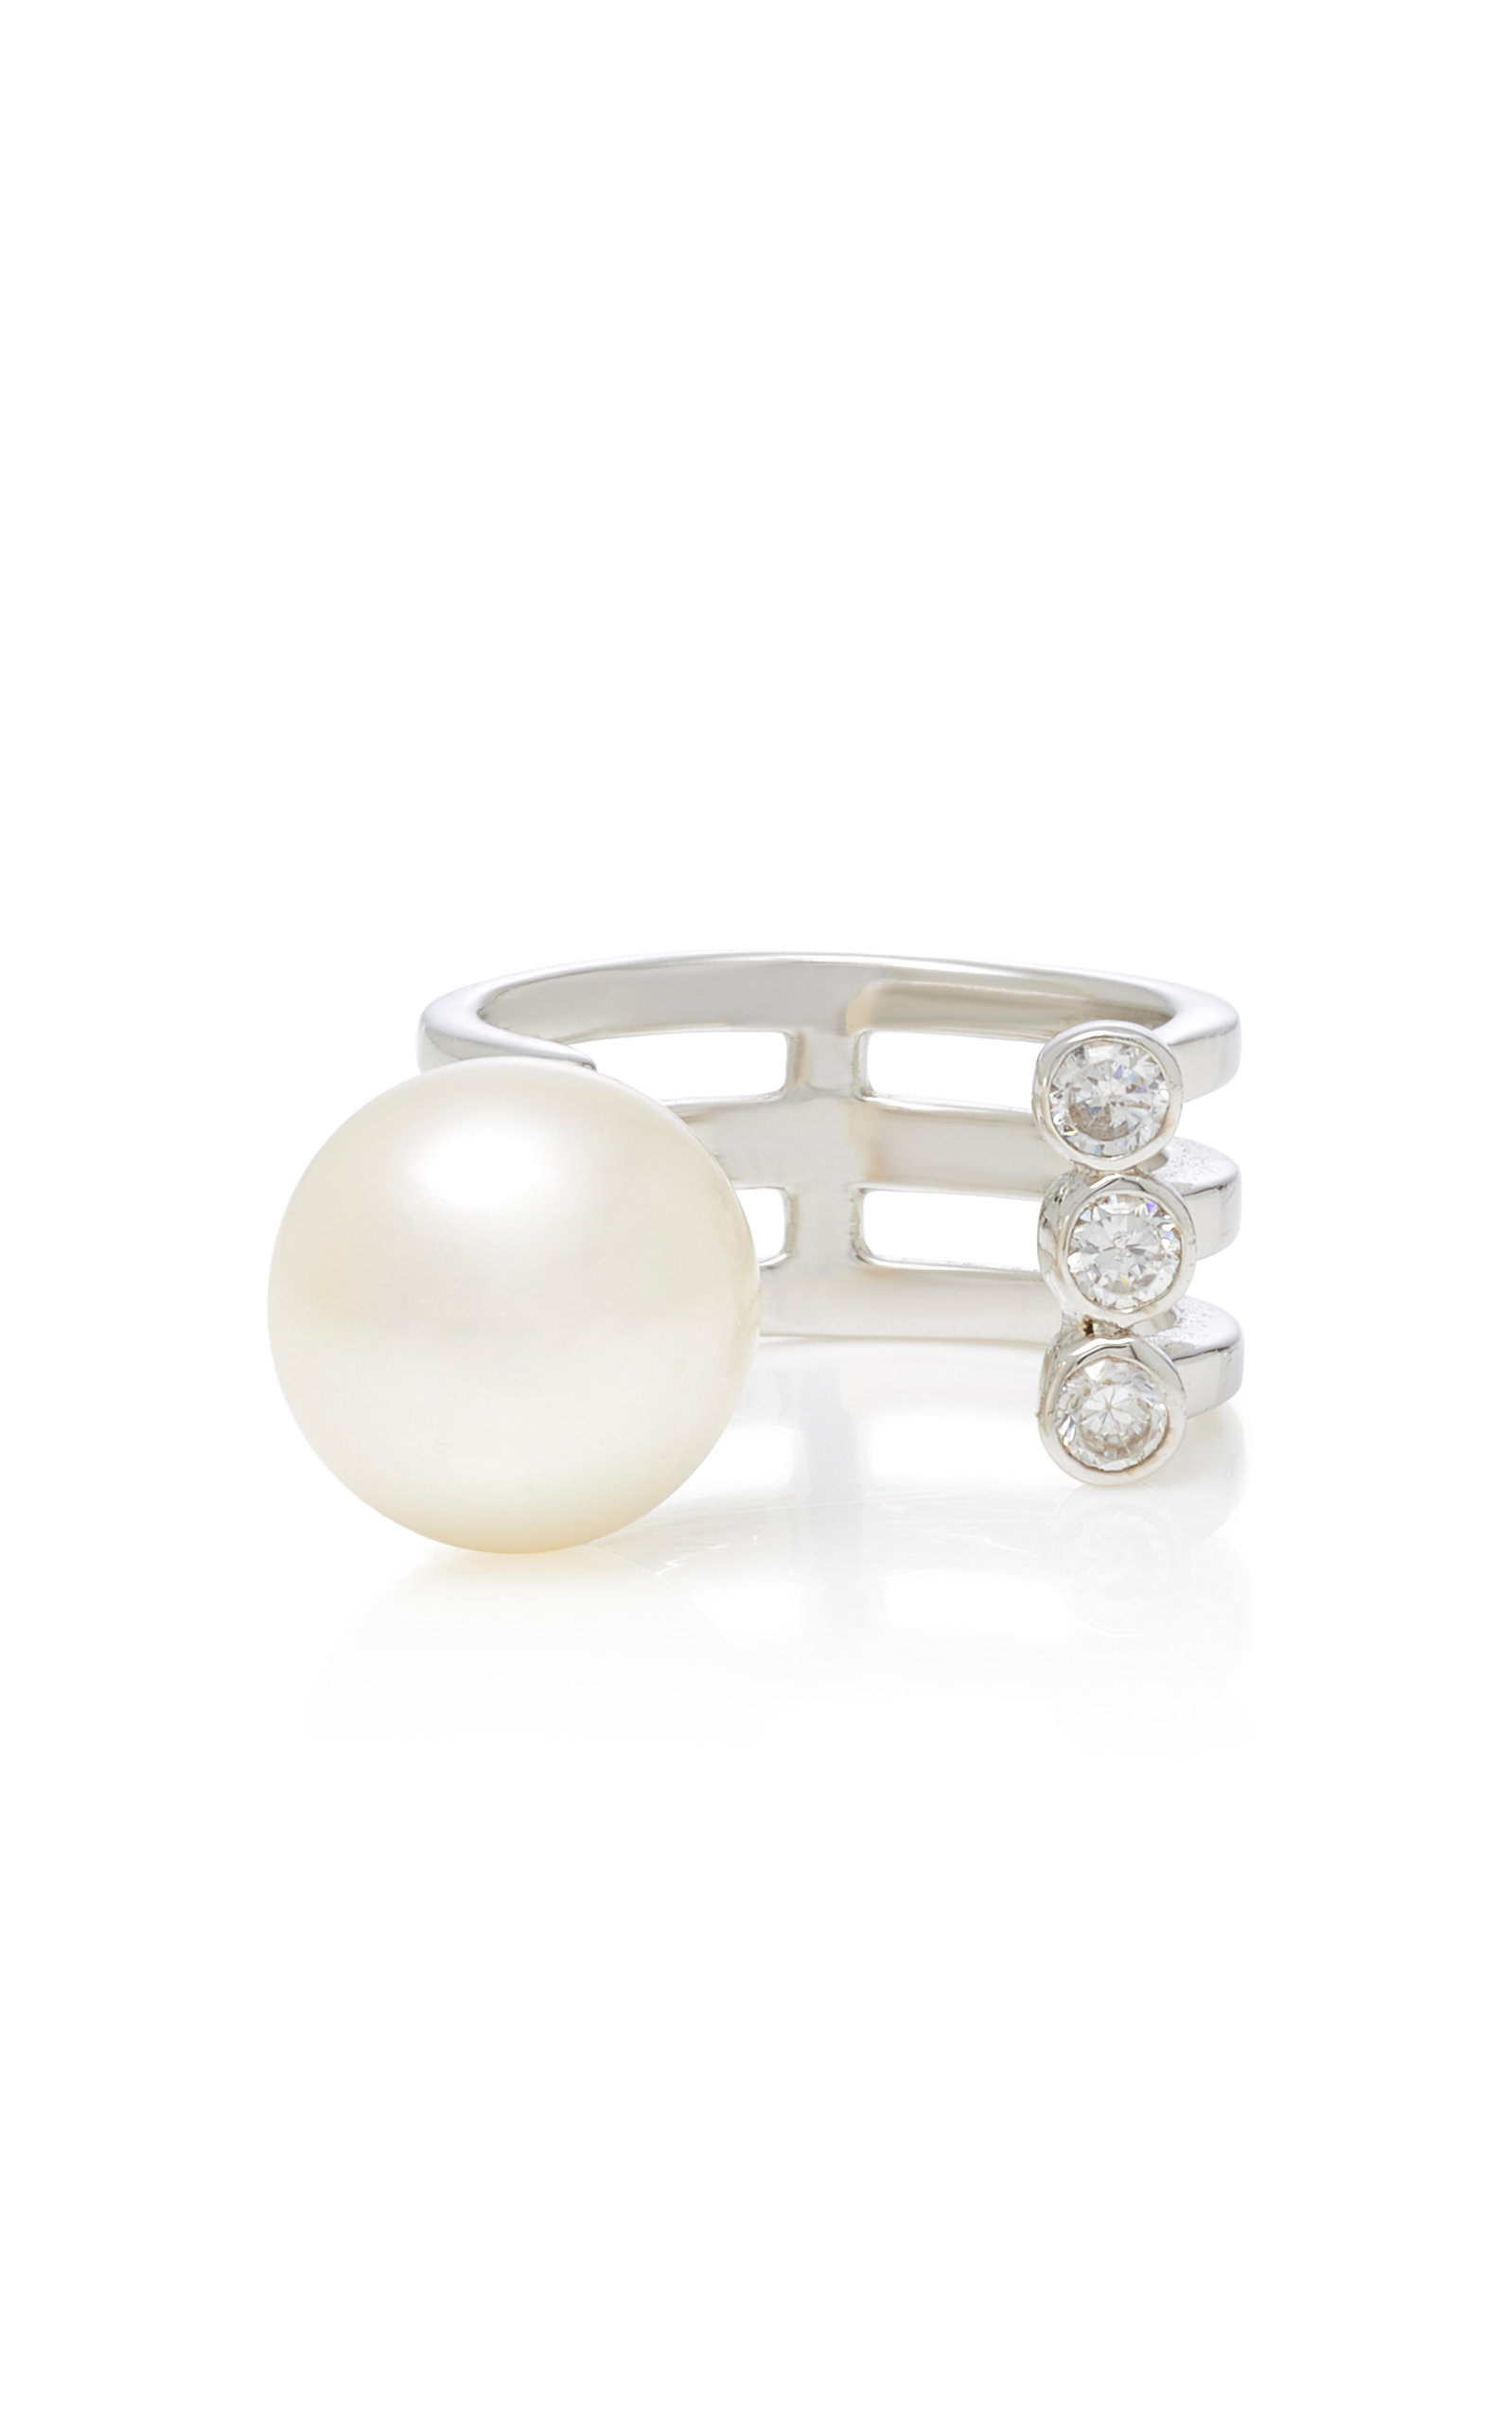 LYNN BAN JEWELRY STERLING SILVER DIAMOND AND PEARL RING